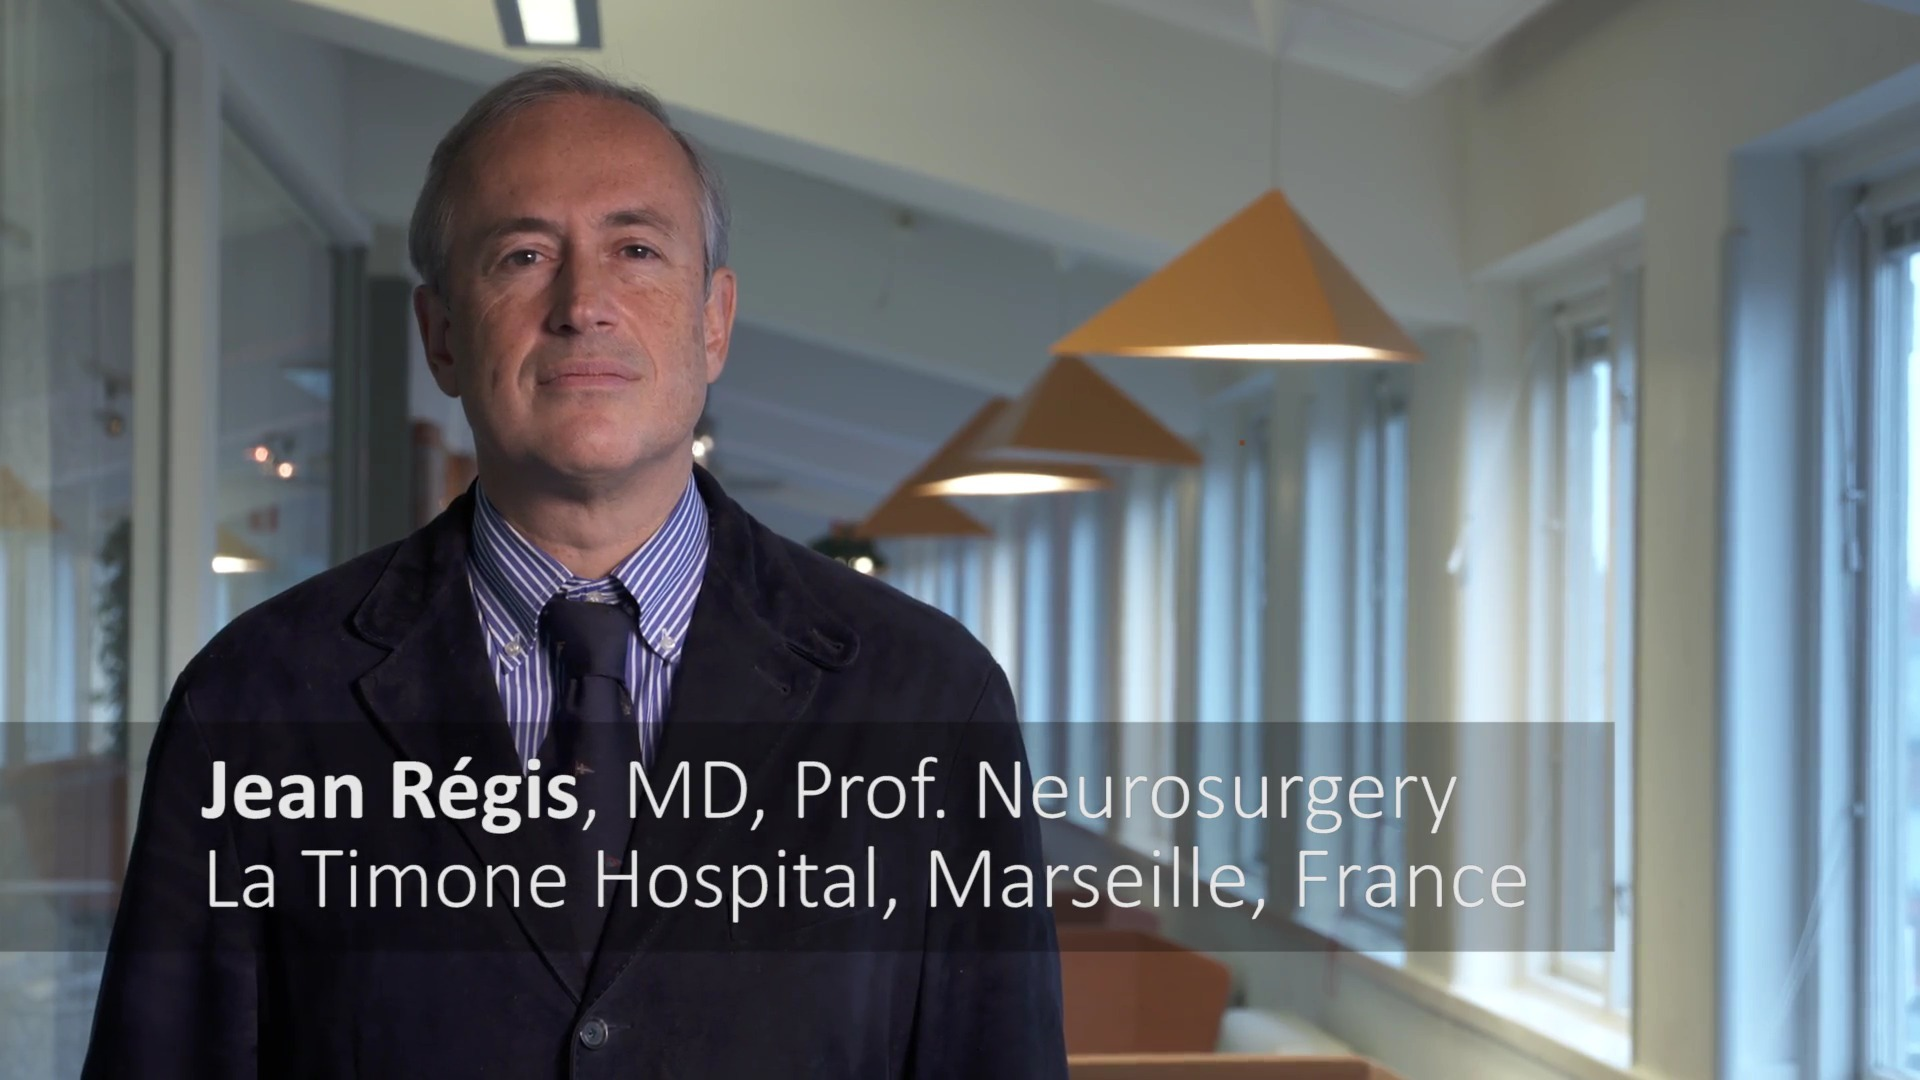 Cranial SRS with Icon - Jean Regis